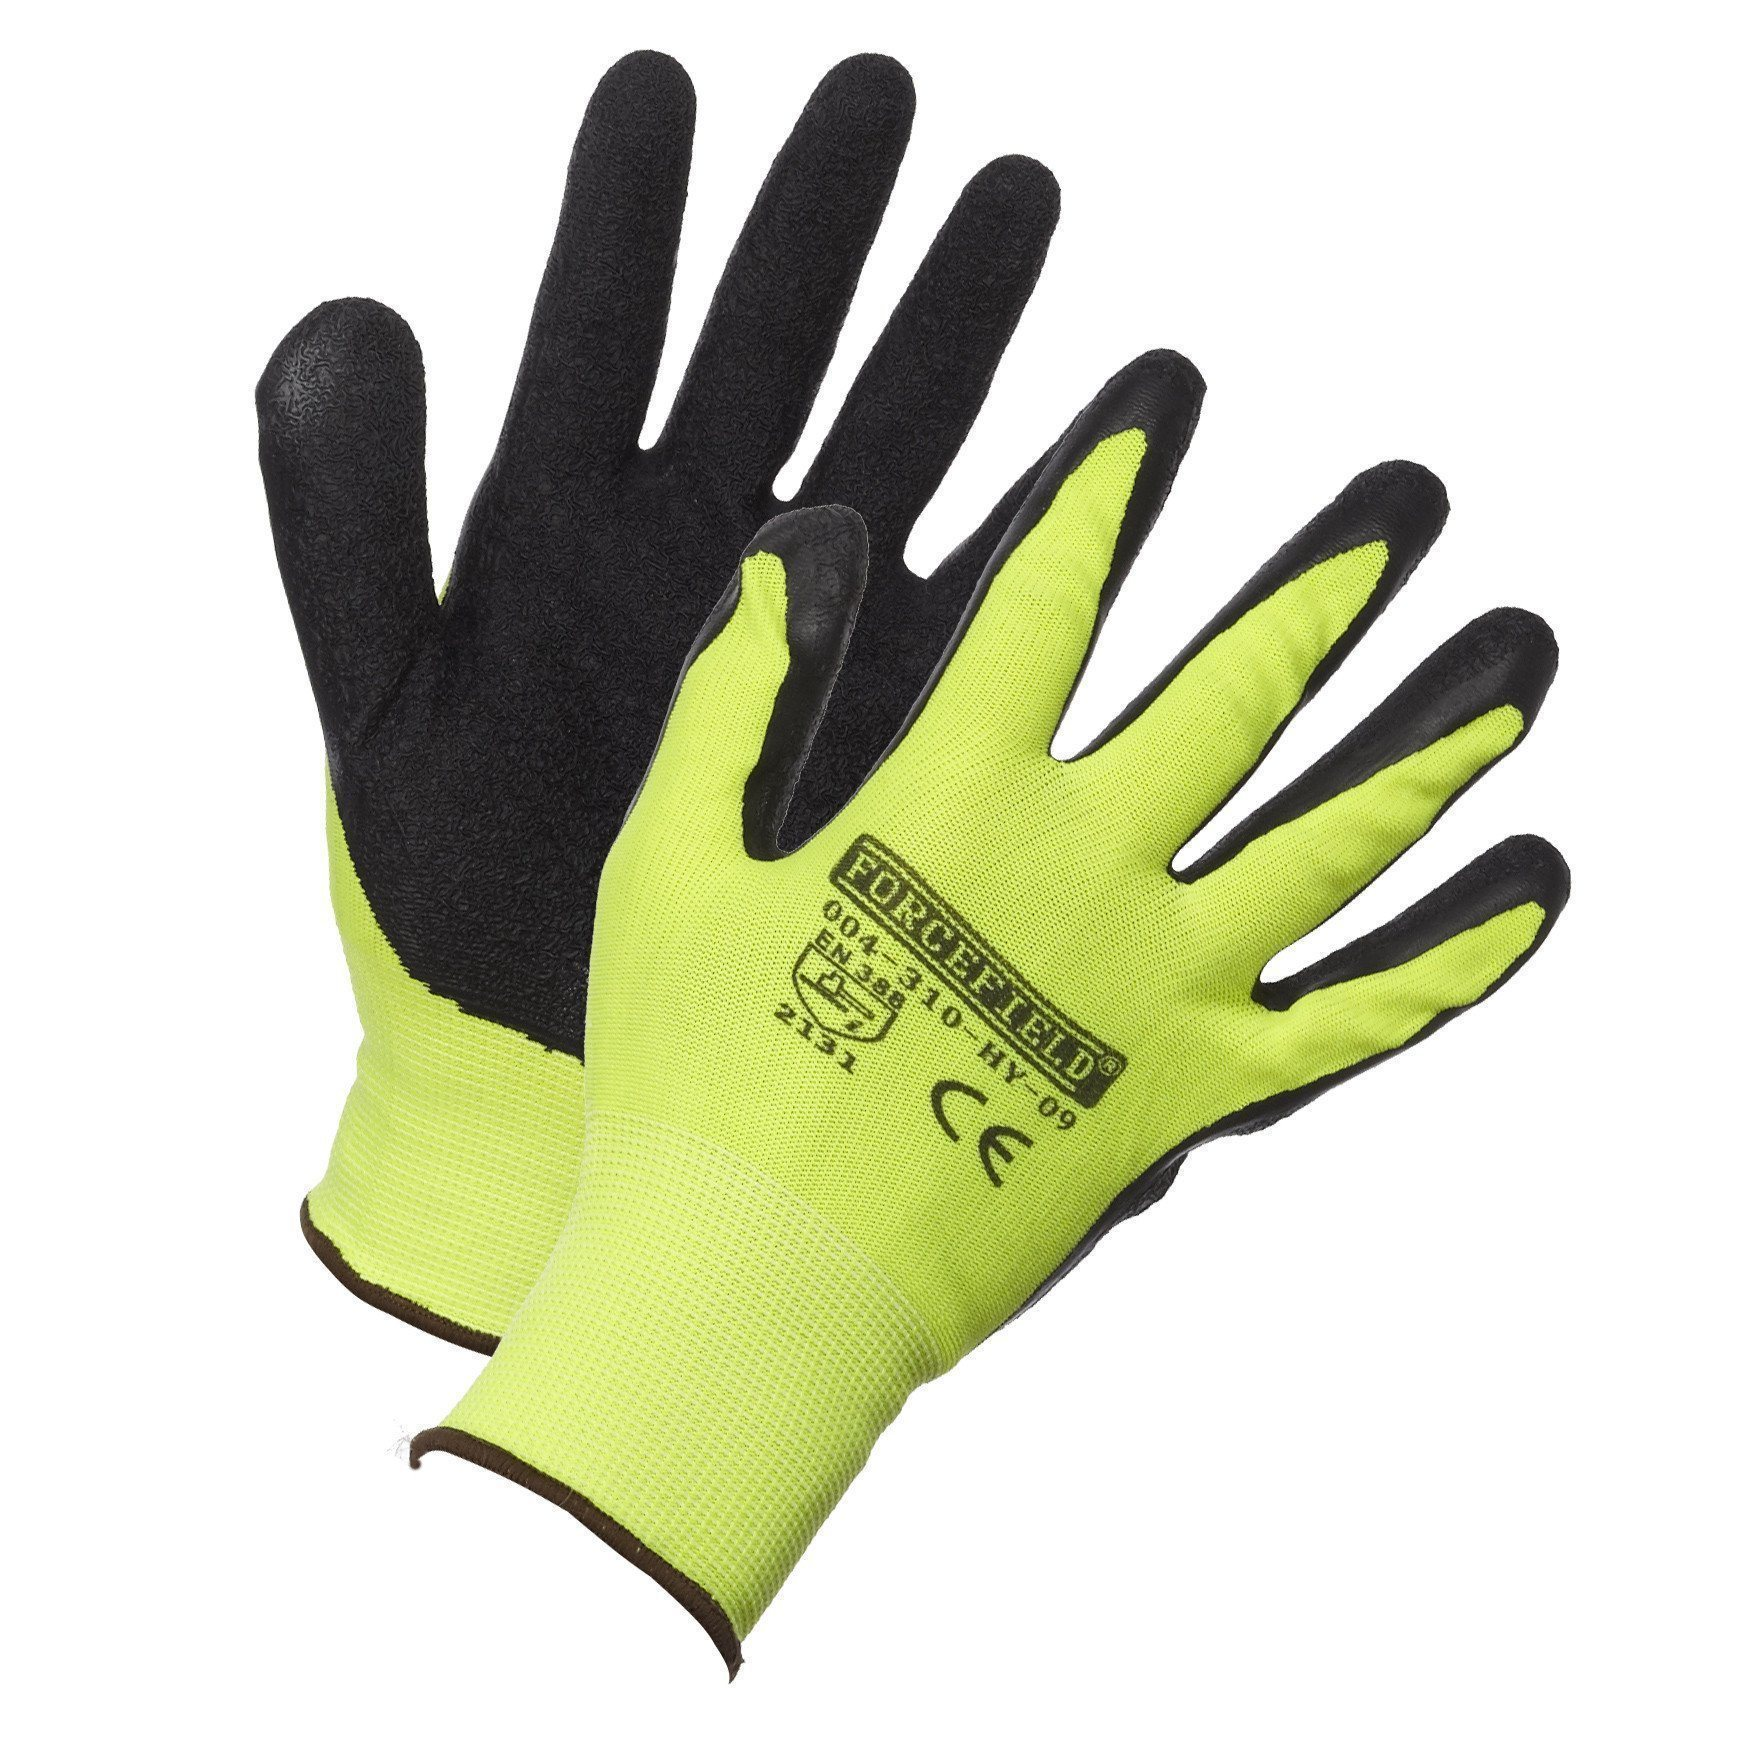 Gloves - Forcefield - High Vis, 004-310-HY-09